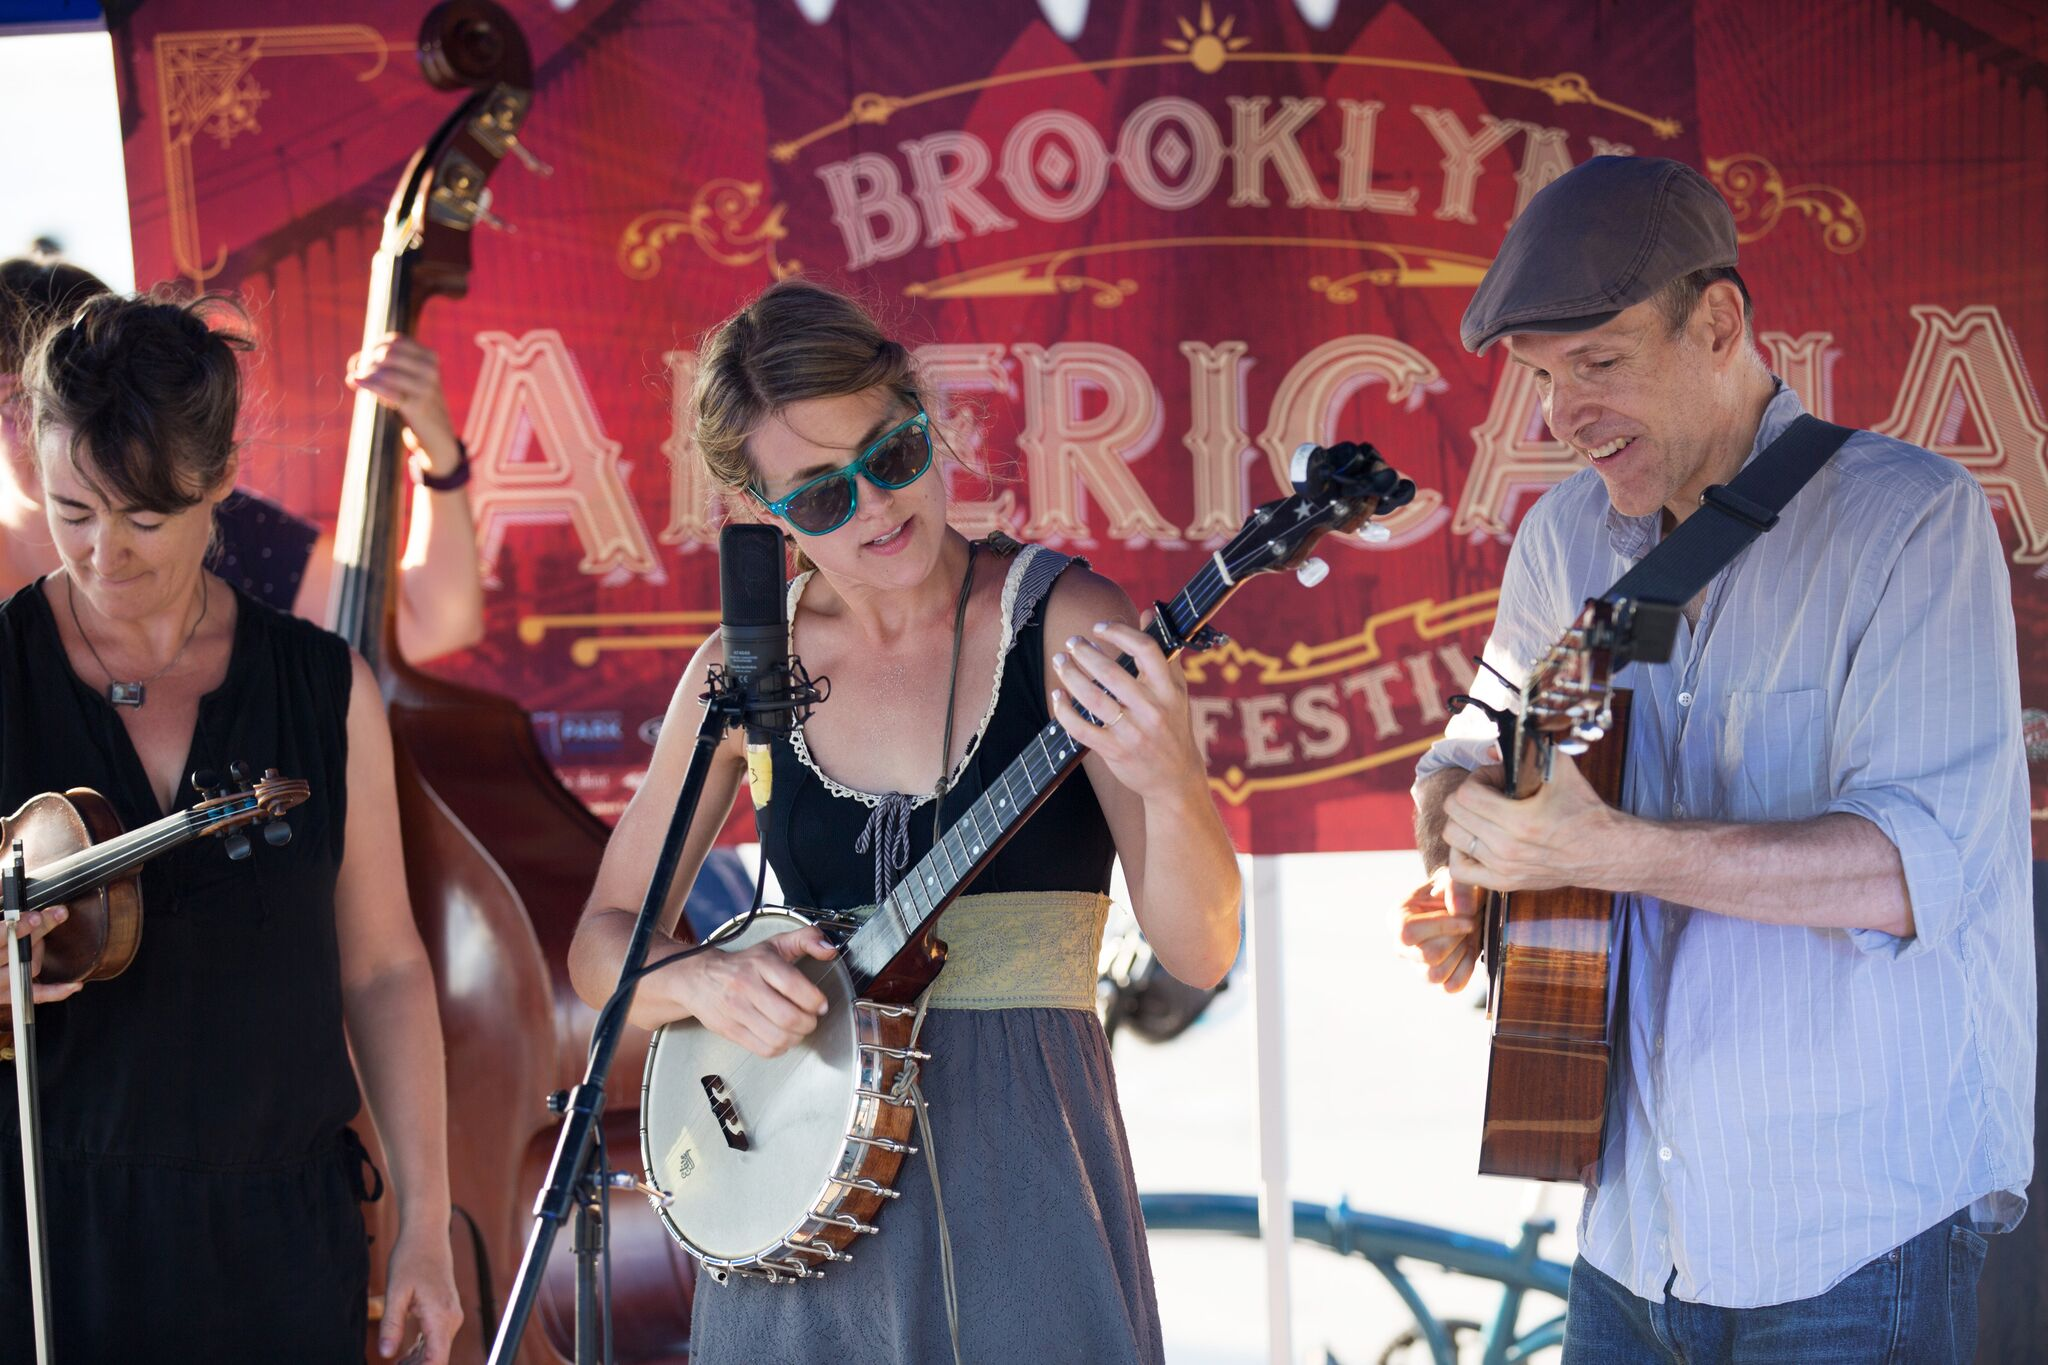 The Brooklyn Americana Music Festival